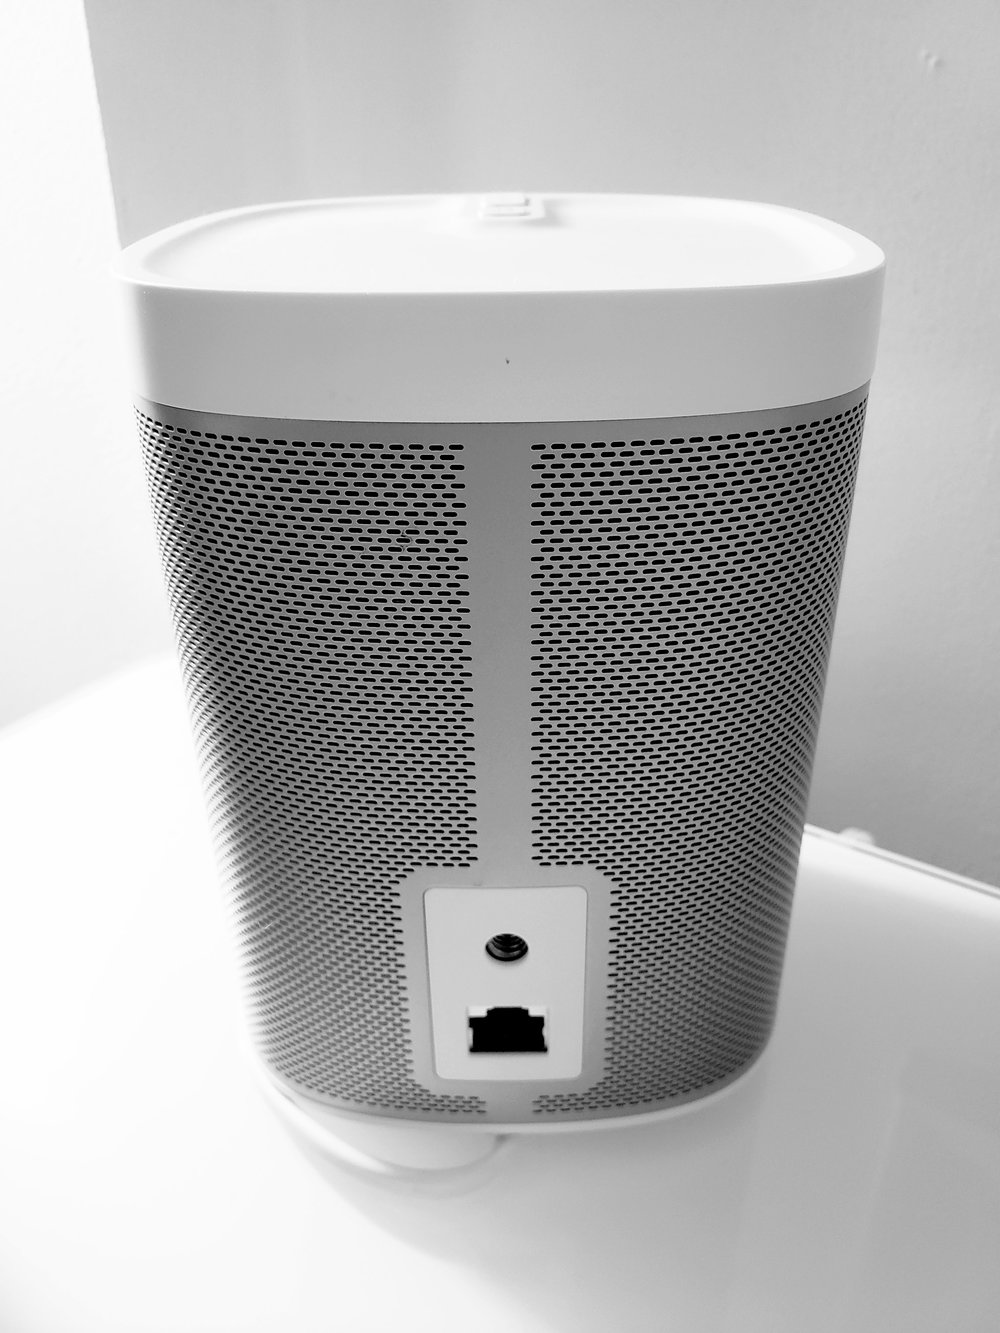 Sonos Play 1 Review: The  Sonos Play 1  can connect through wifi or a hardwired ethernet connection. A screw mounting port is also included for mounting sonos on walls or speaker stands.